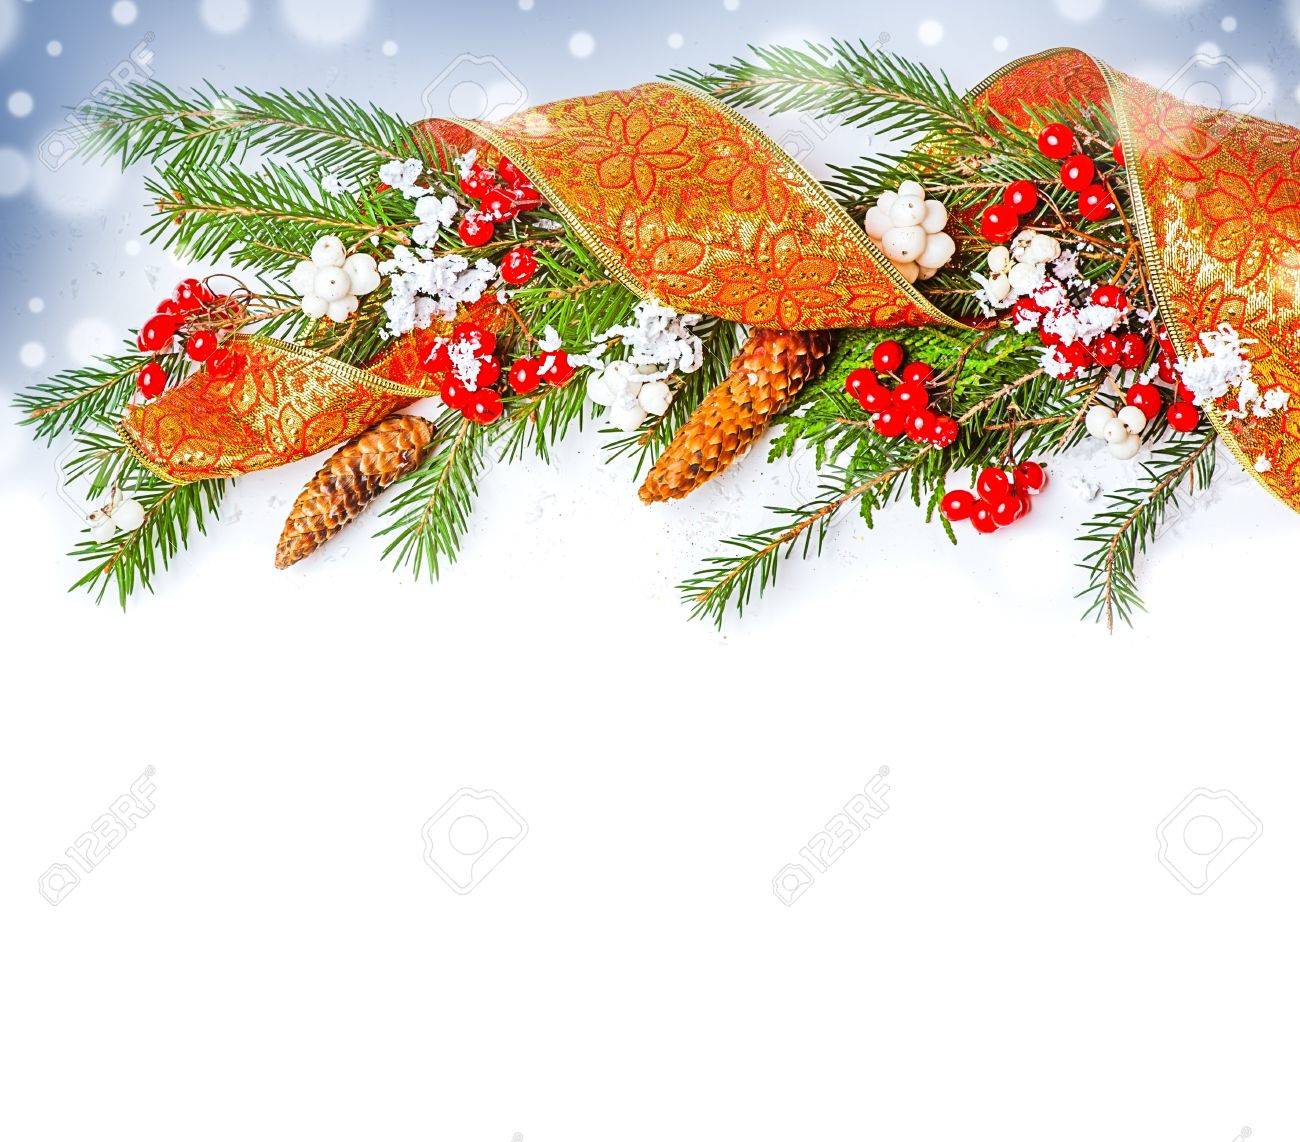 Christmas Decorations border  - ribbon, berry, con on fir tree branch Stock Photo - 16279941